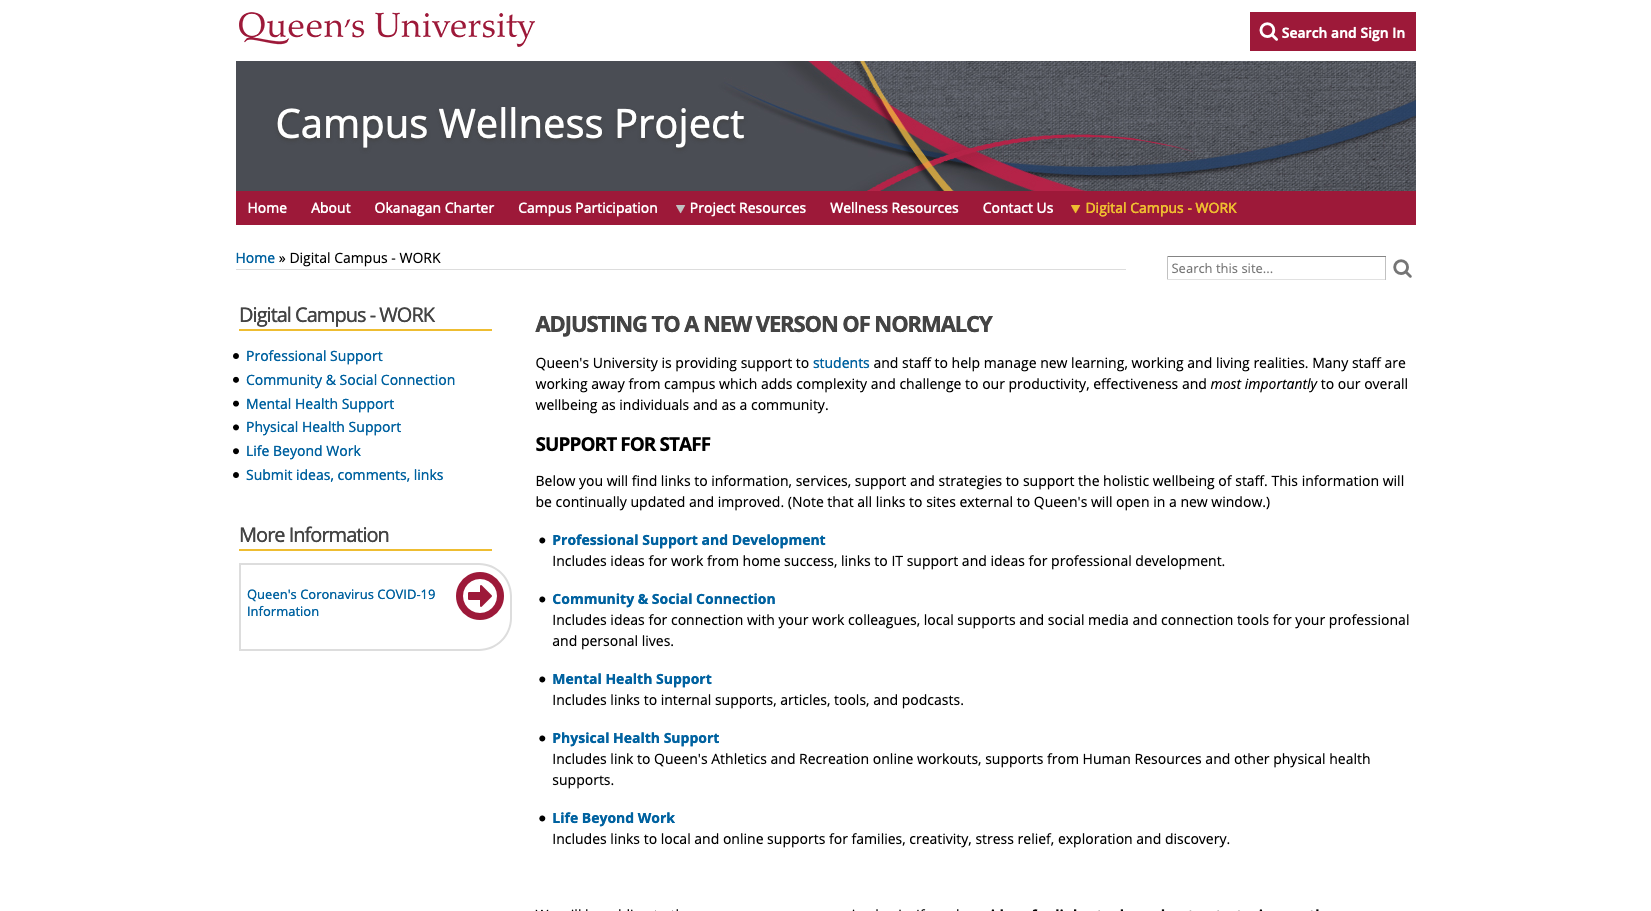 Queen's Campus Wellness Project